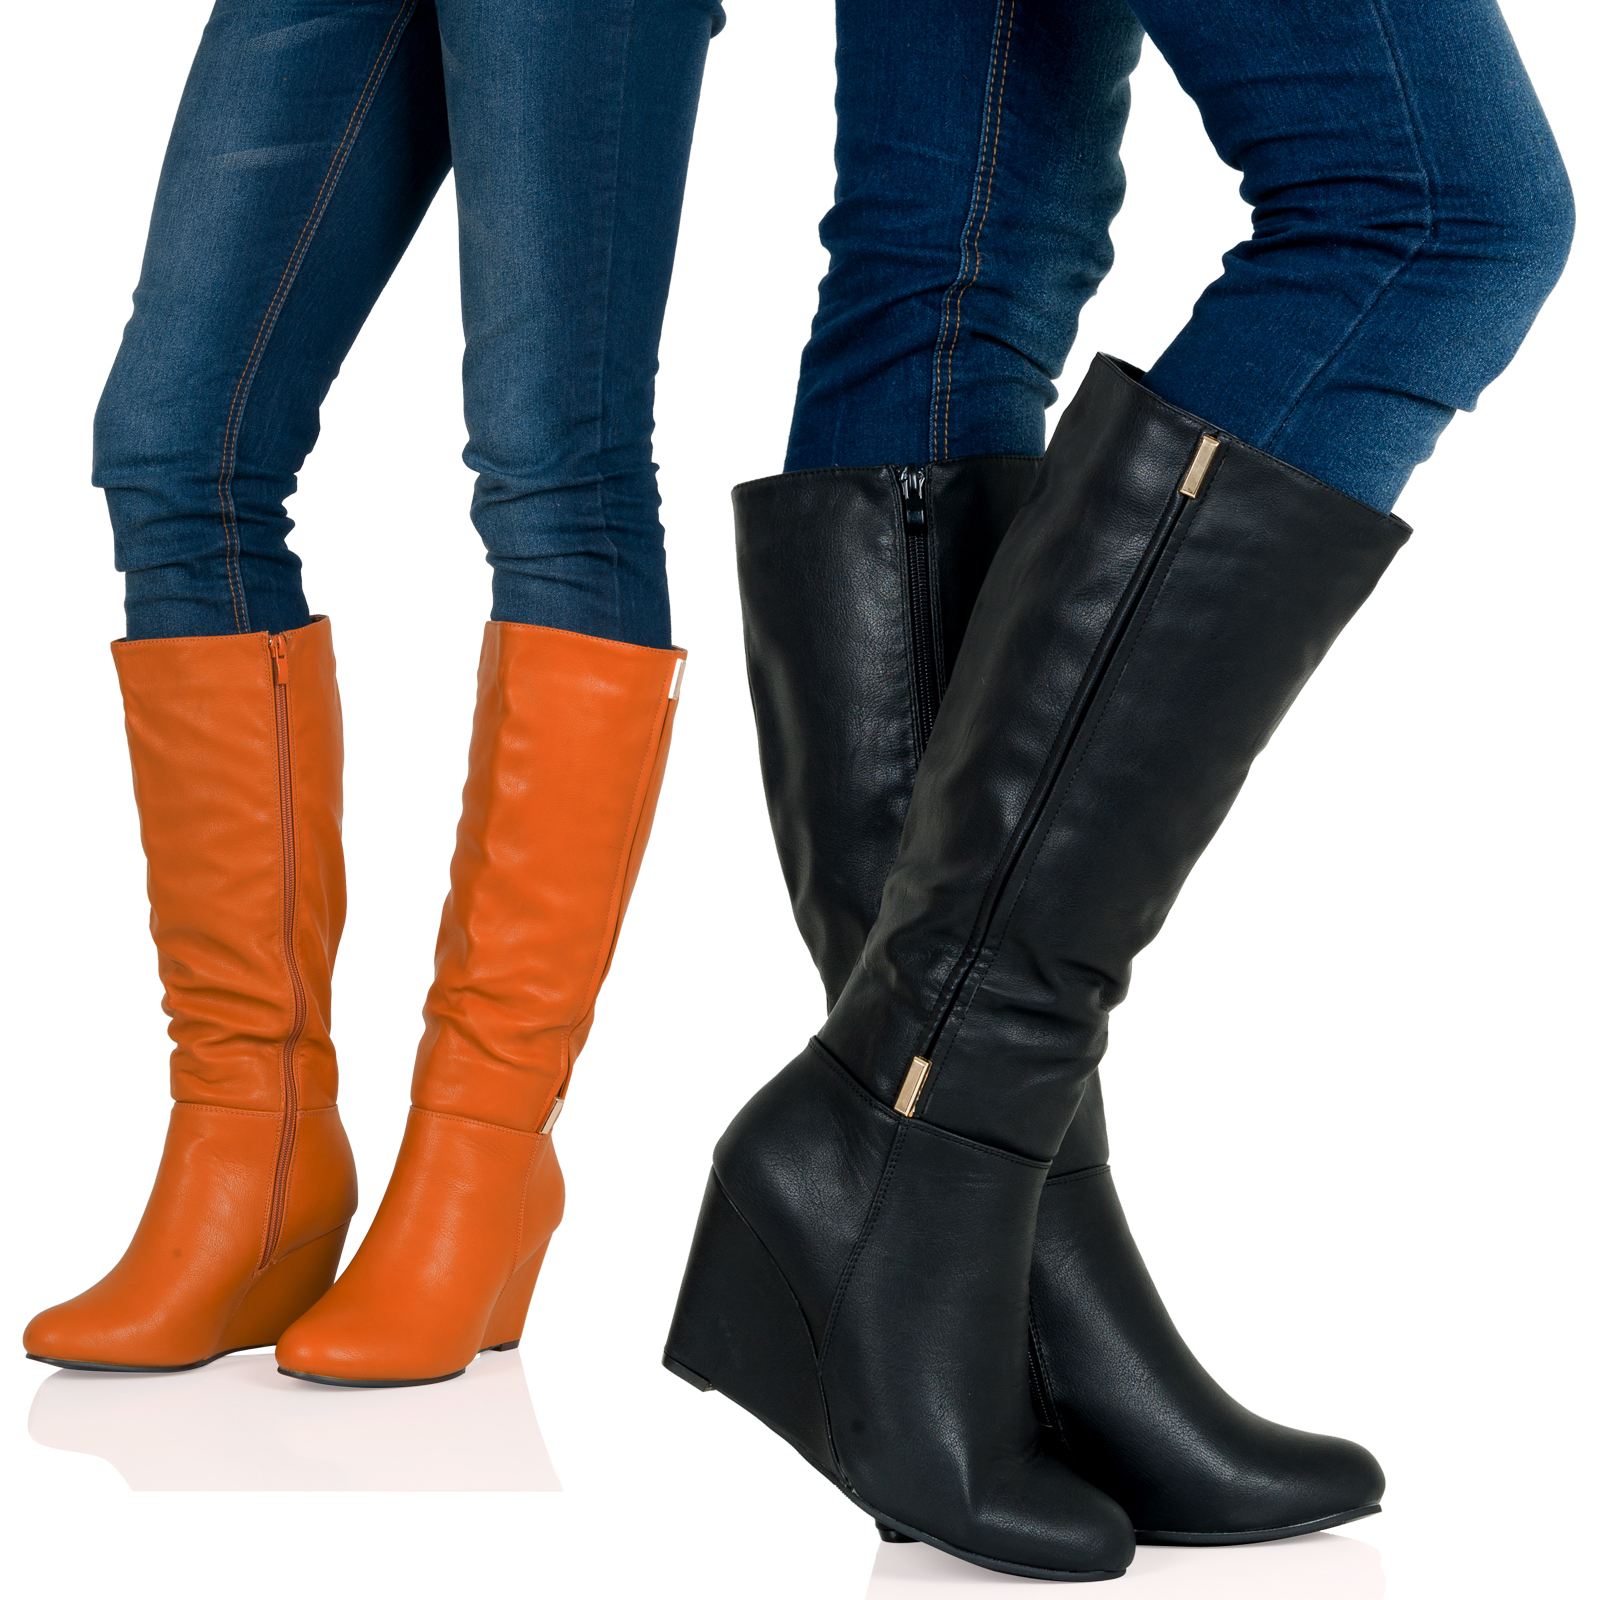 wedge knee high boots boots price reviews 2017